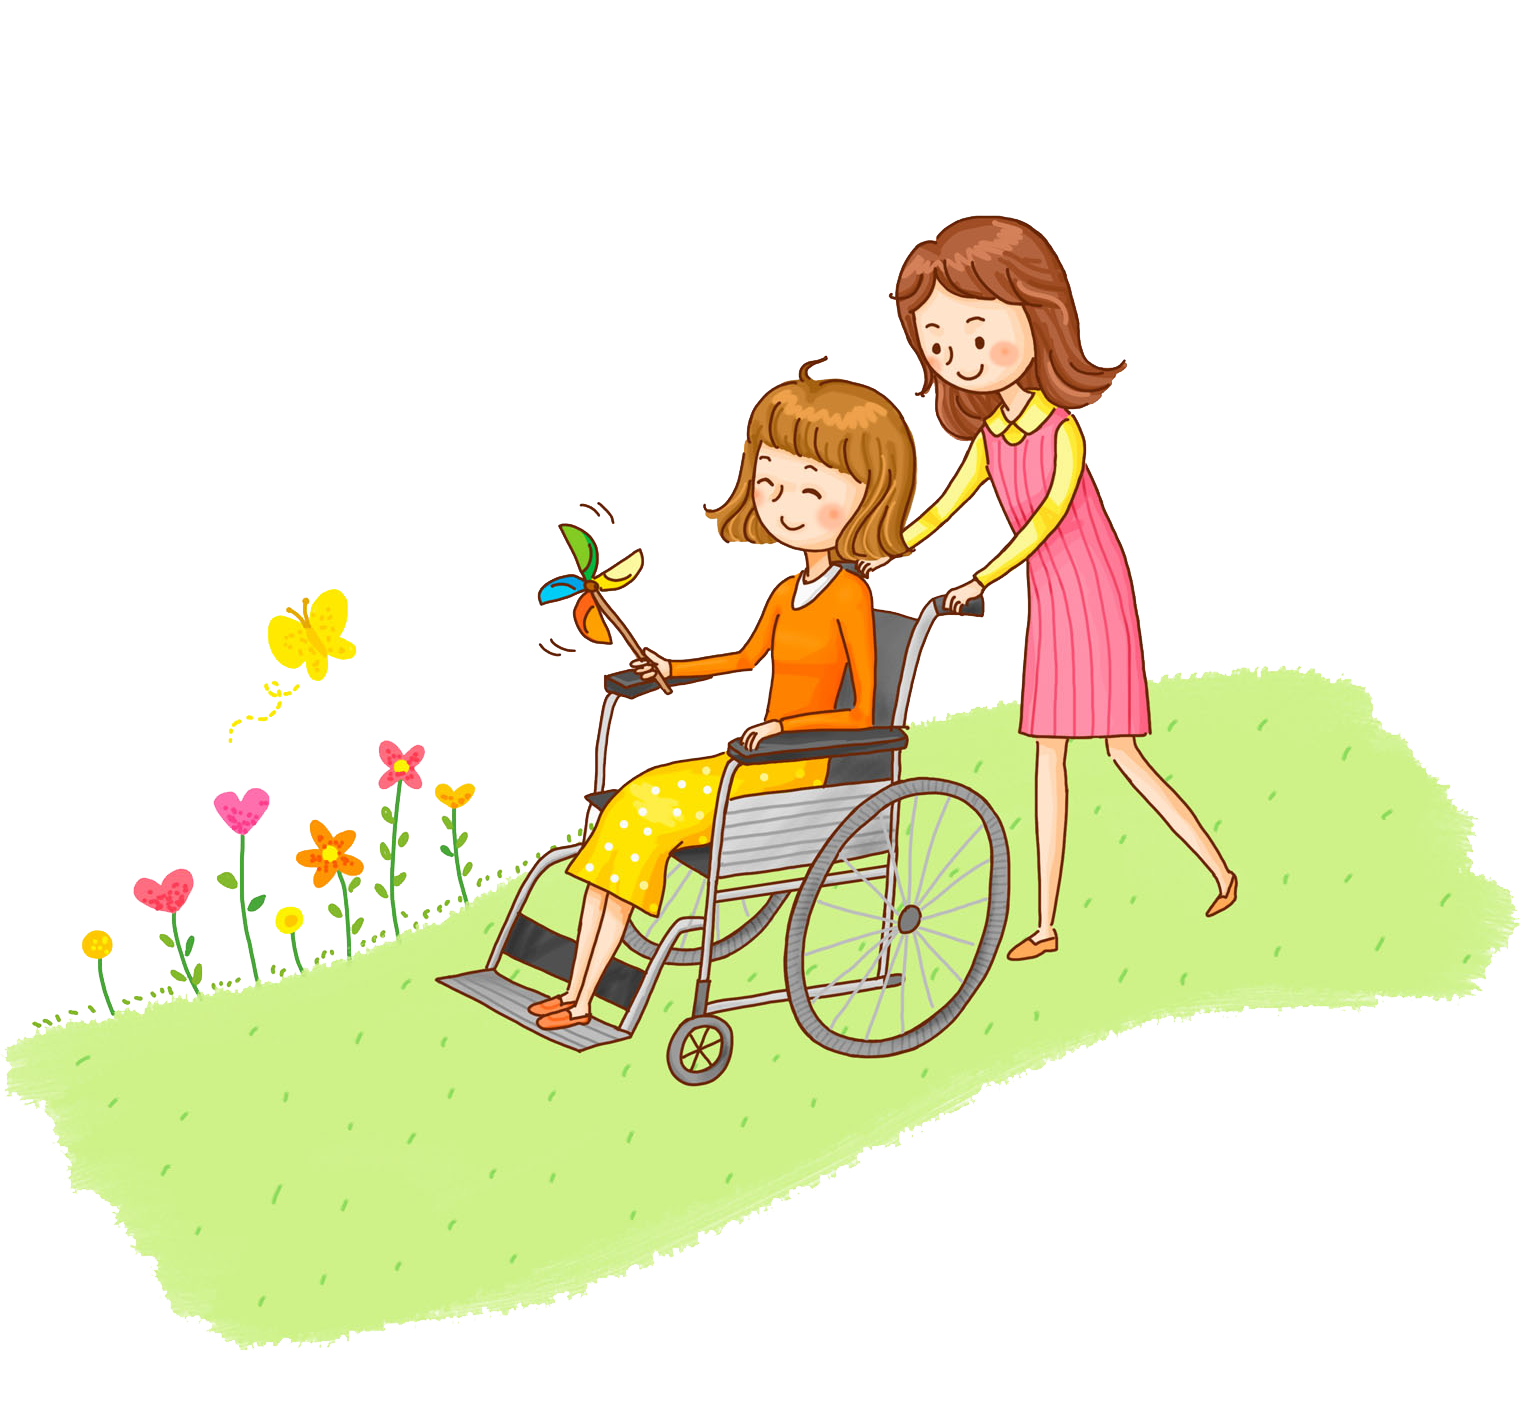 Wheelchair illustration a man. Injury clipart disability person